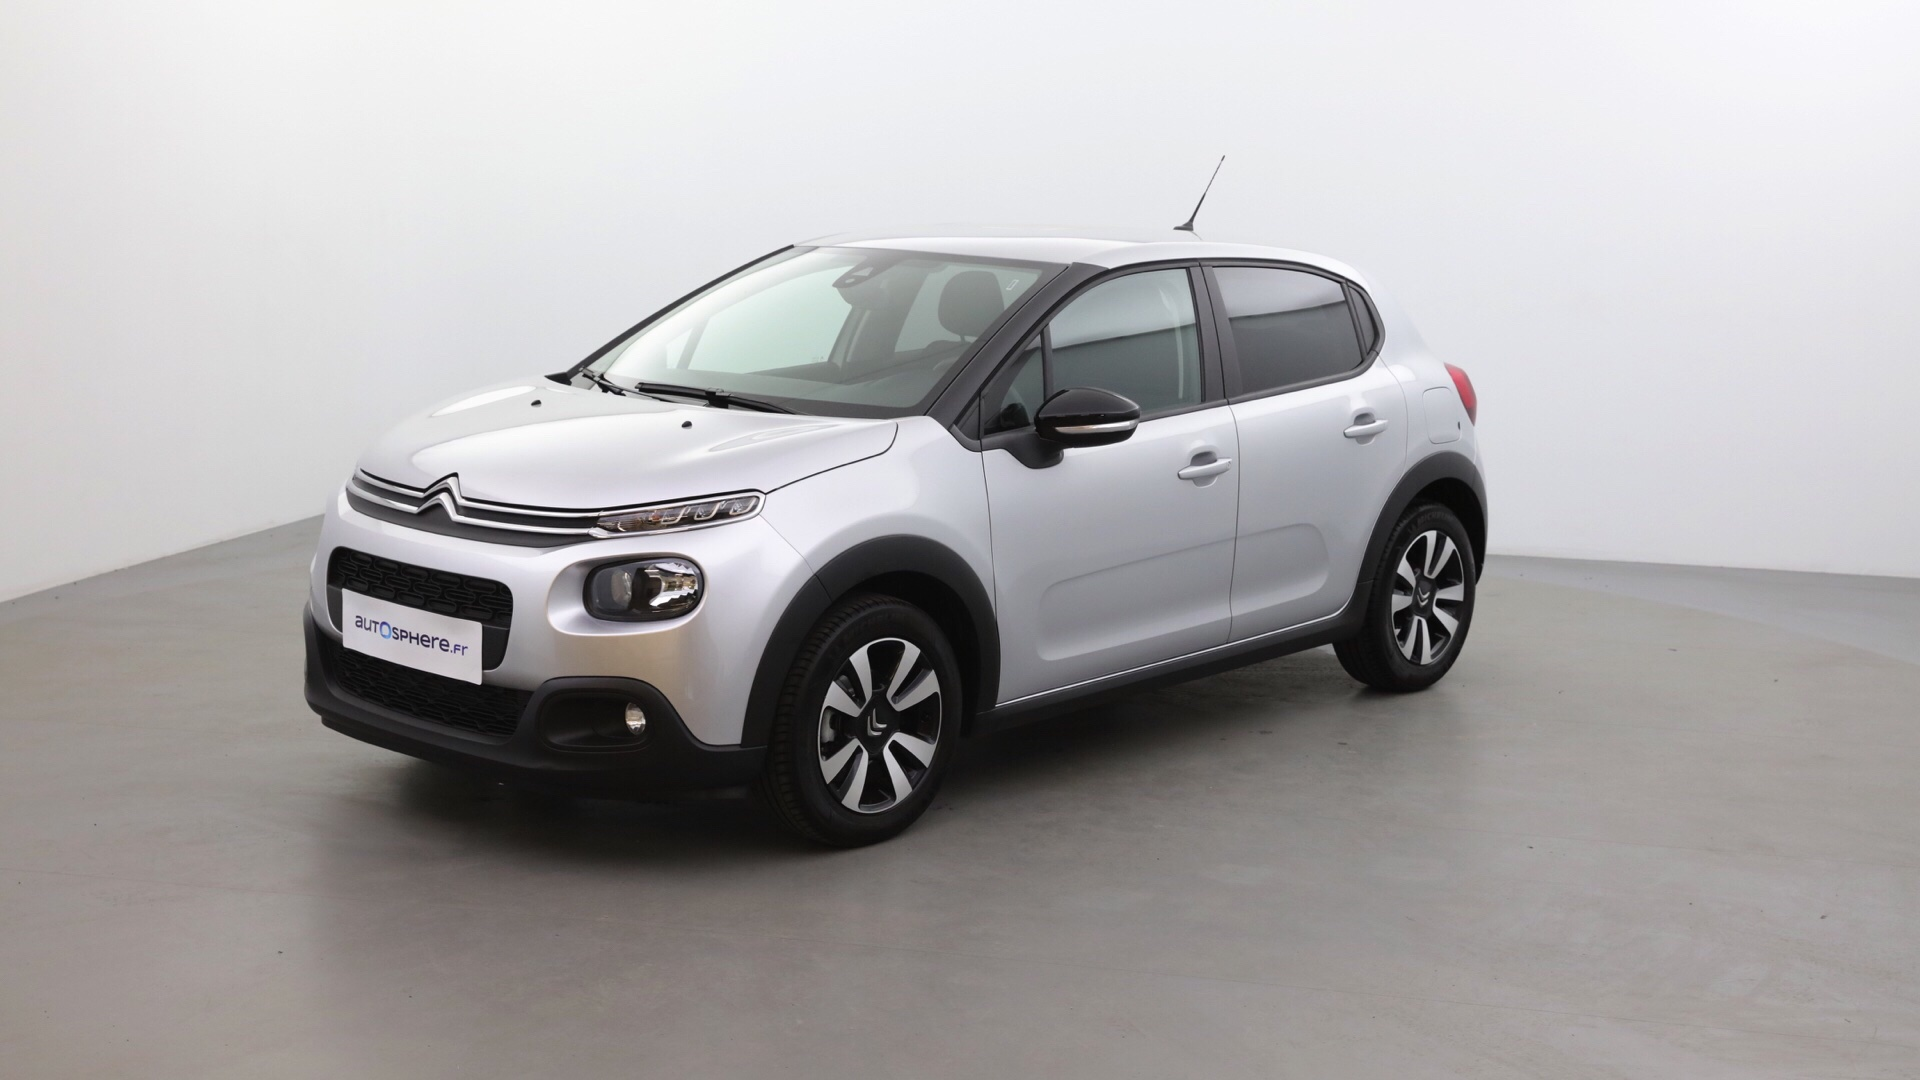 CITROEN C3 FEEL 1,2 PURE TECH 82 - Miniature 1